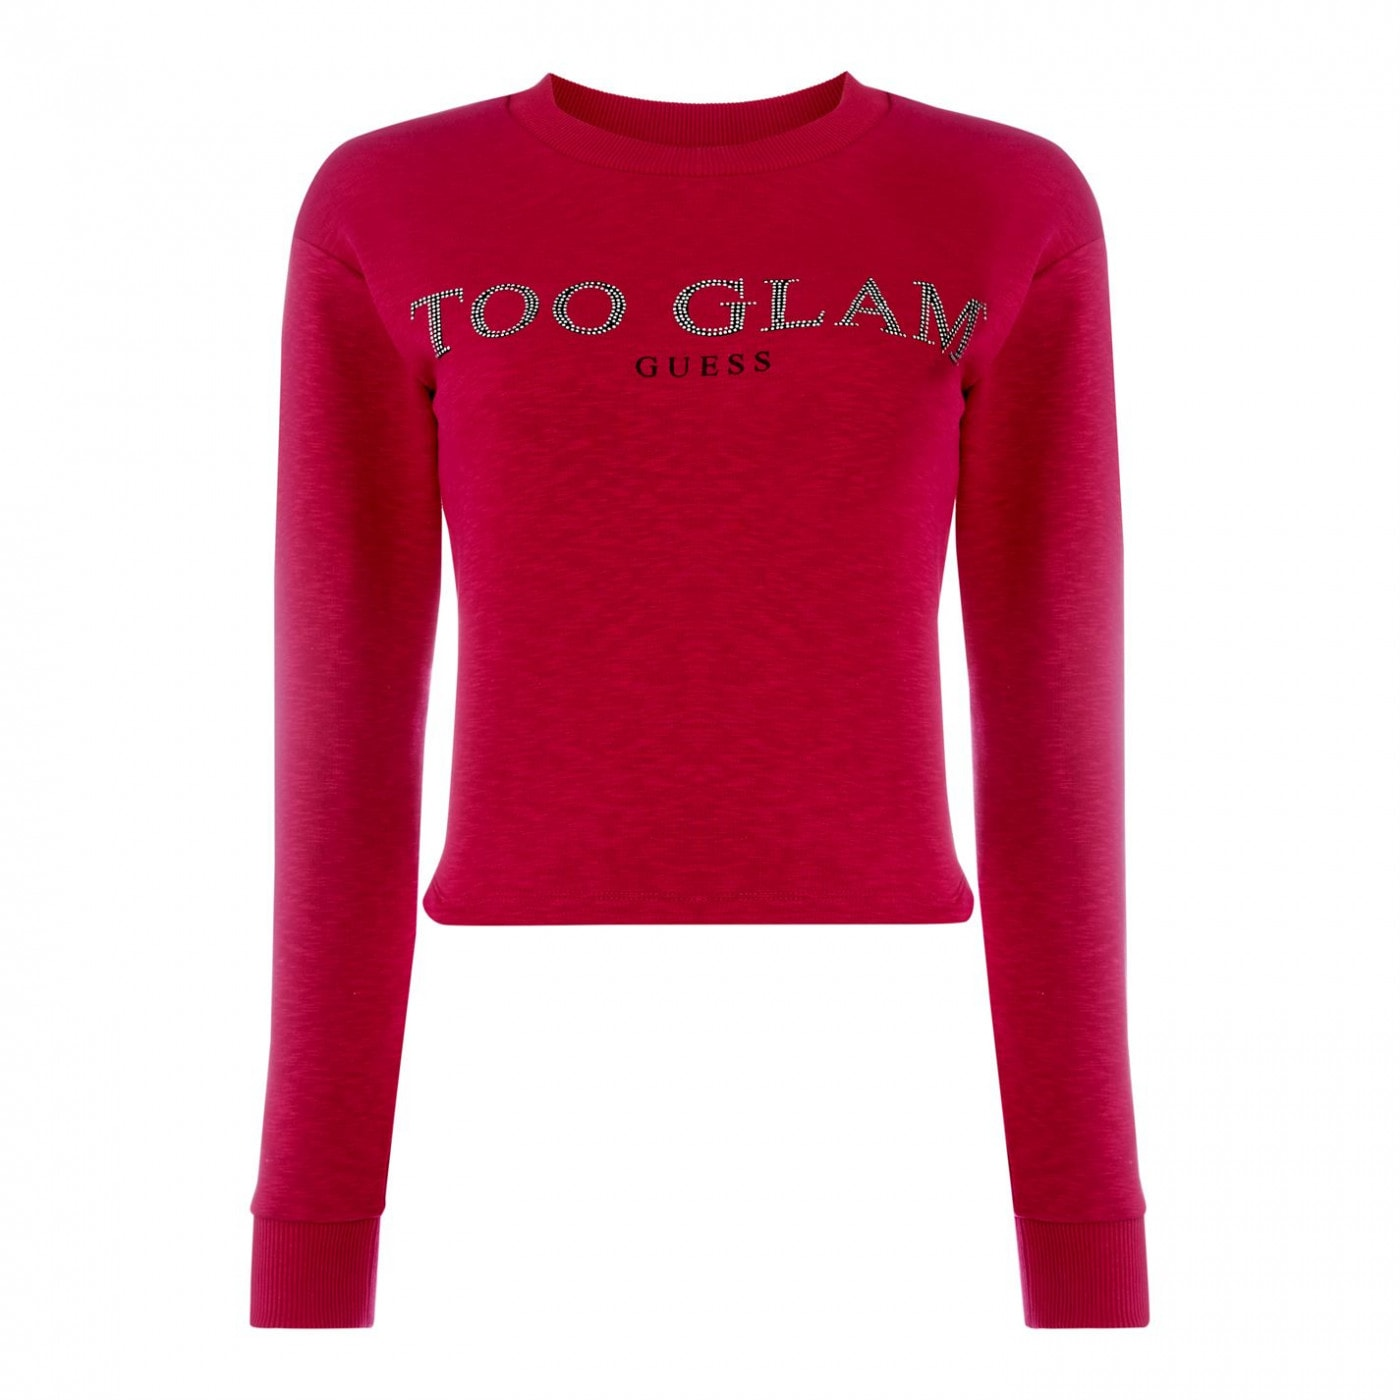 Guess Too Glam Sweatshirt